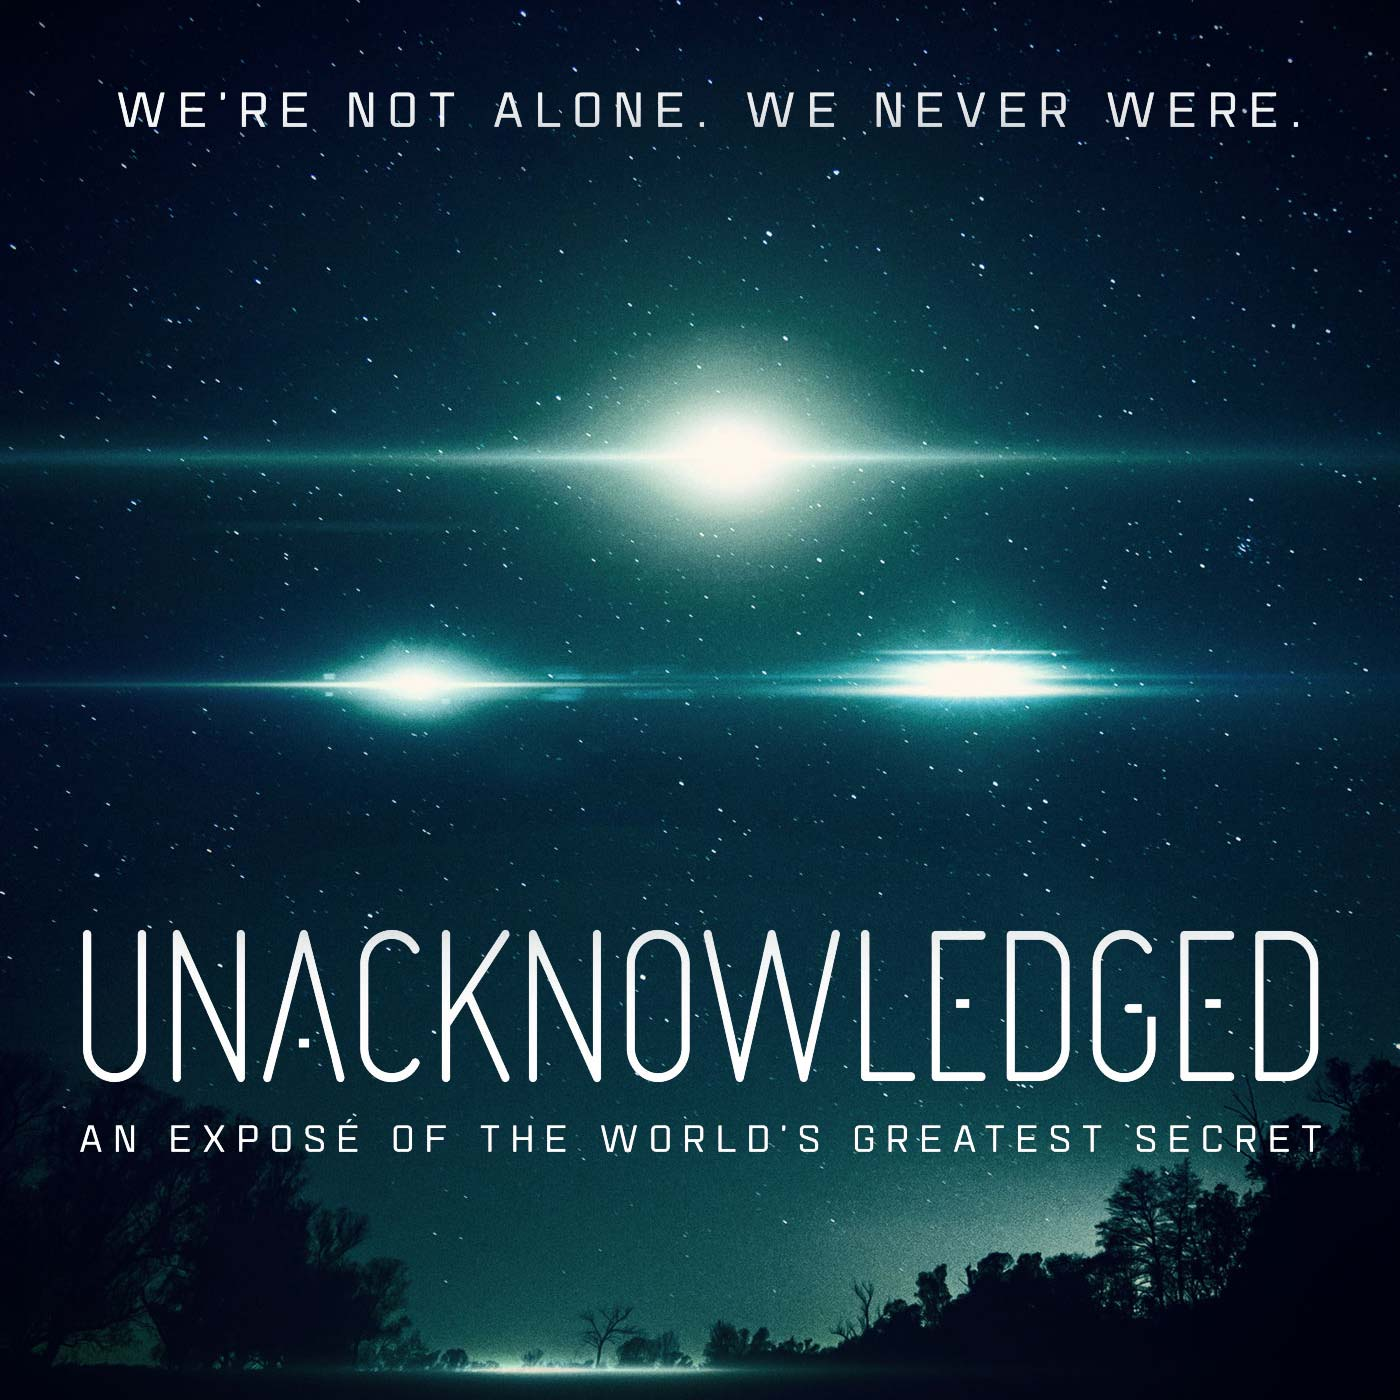 A new Netflix documentary  purporting to provide proof of alien visitation fails to deliver